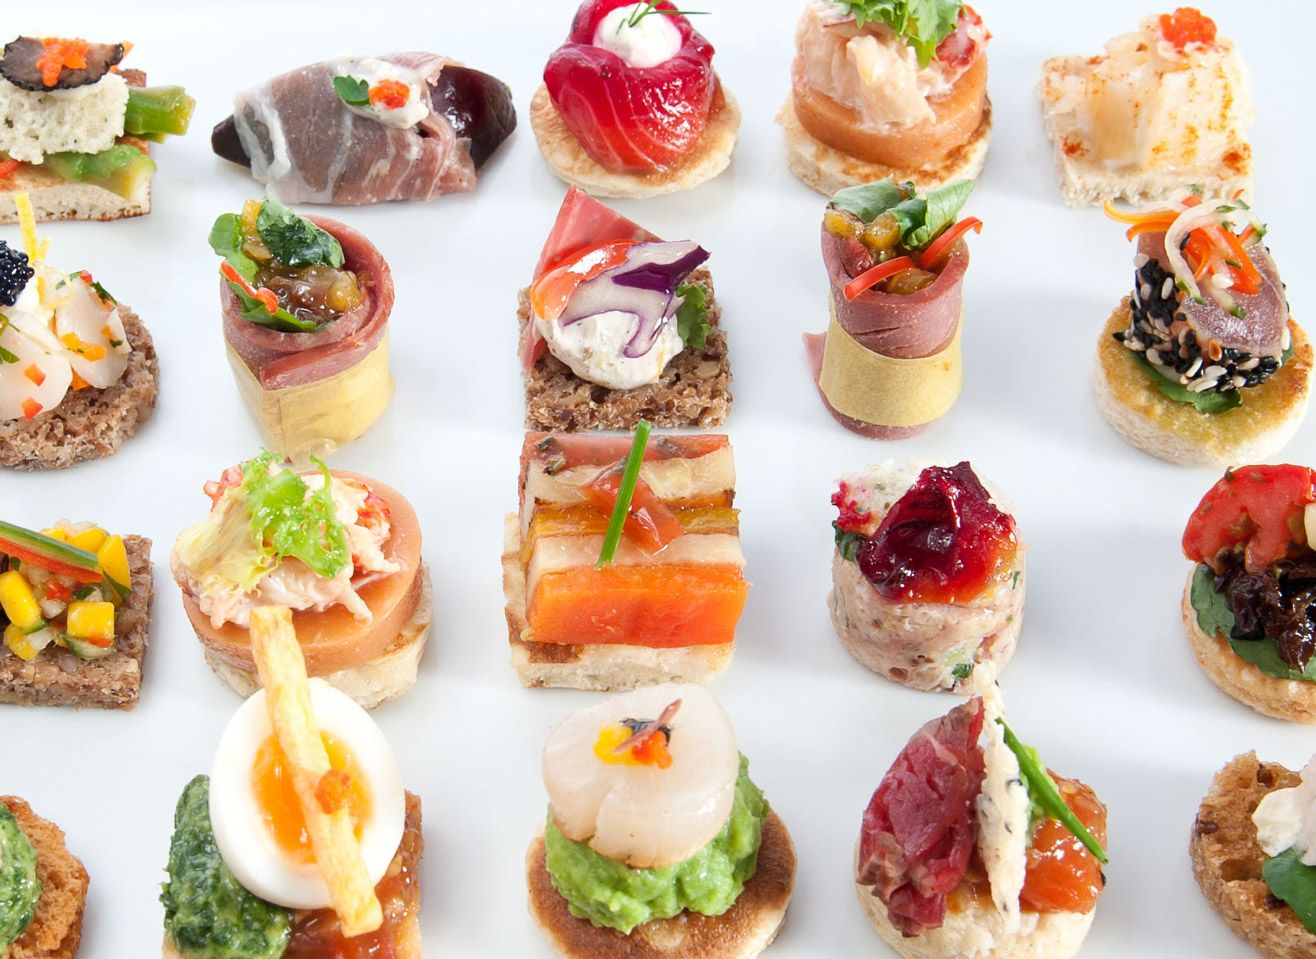 Our canap s canap world catering london canap s main for Canape suggestions